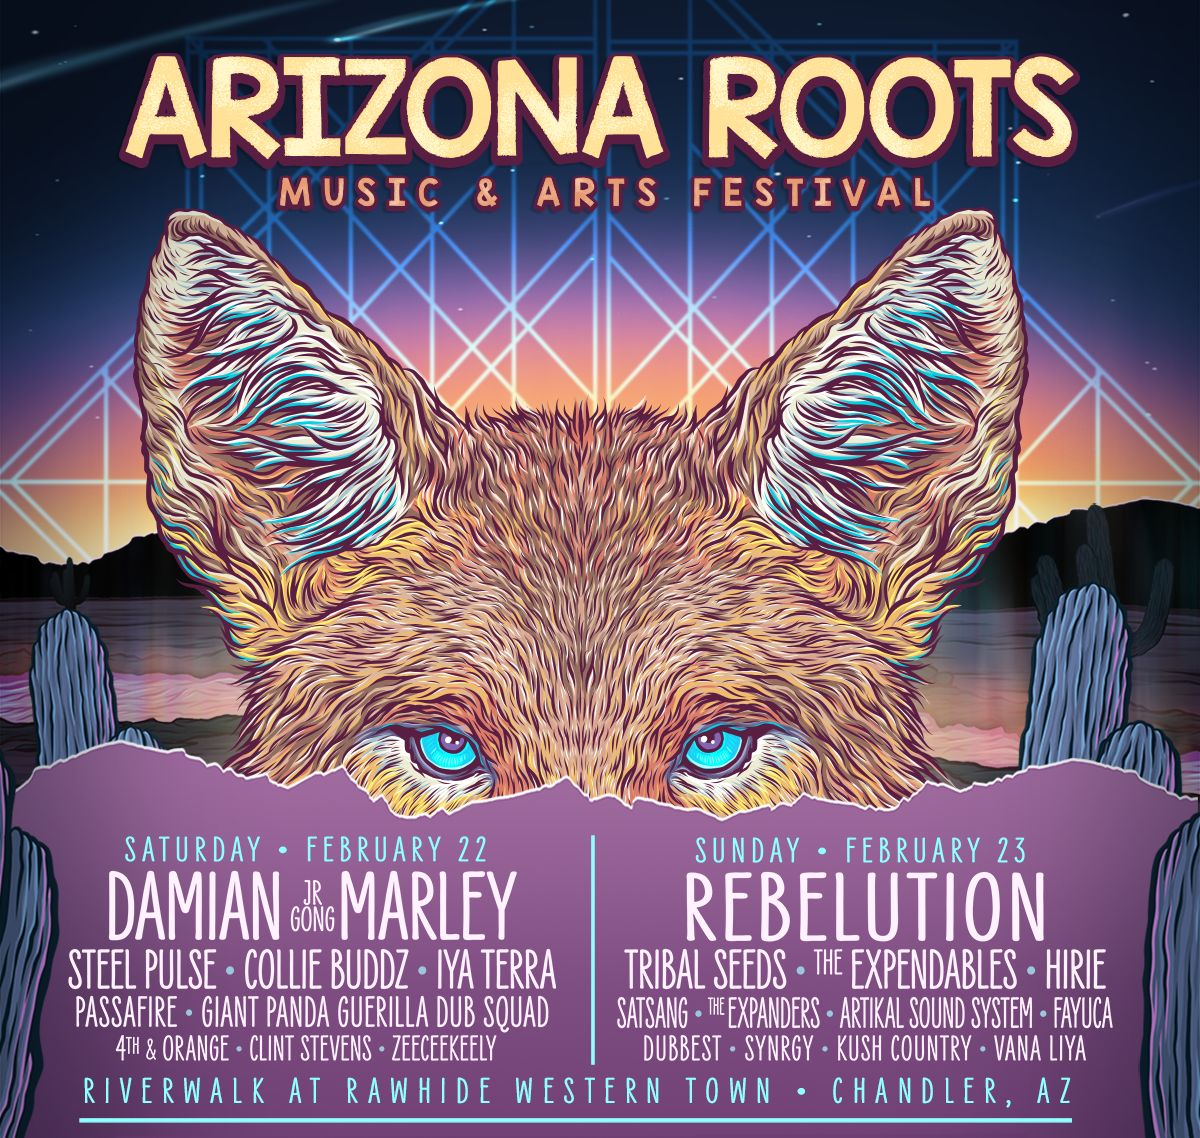 Arizona Roots Music & Arts Festival